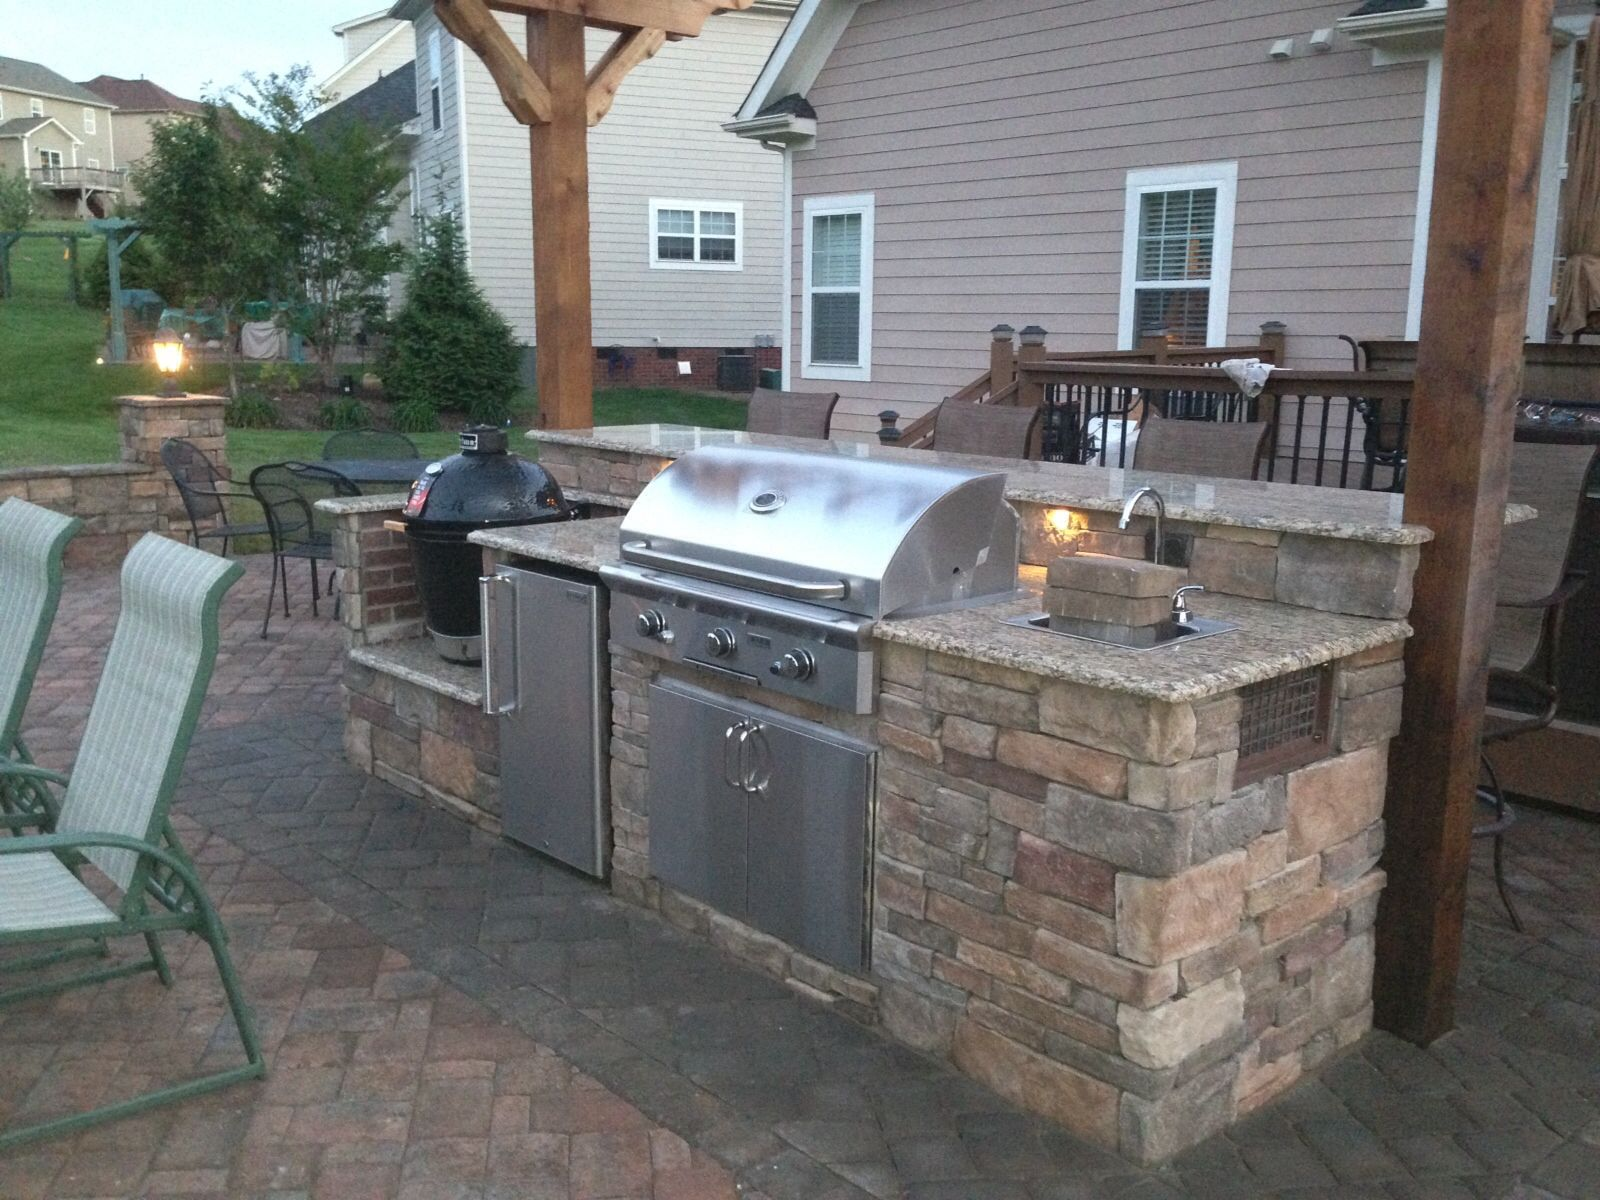 Island With Smoker Fridge 36 Grill Sink And A Bar Ledge That Is 11 Long Patio Kitchen Outdoor Kitchen Outdoor Cooking